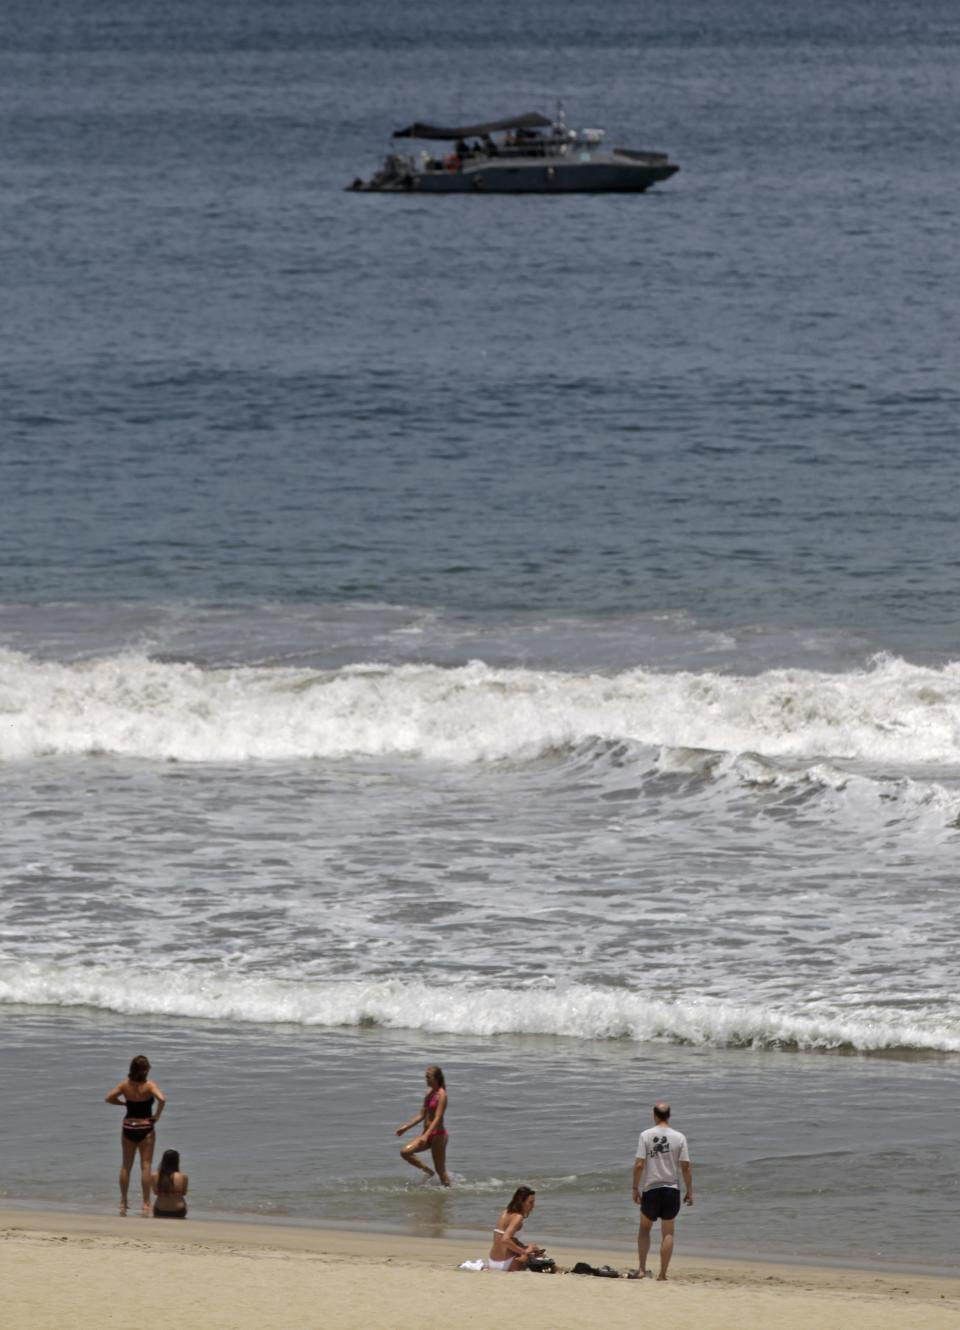 Tourists enjoy the beach of San Jose del Cabo in Mexico's Baja California Peninsula as a Mexican Navy boat patrol on Sunday, June 17, 2012. The G-20 summit starts in Los Cabos on Monday. (AP Photo/Eduardo Verdugo)